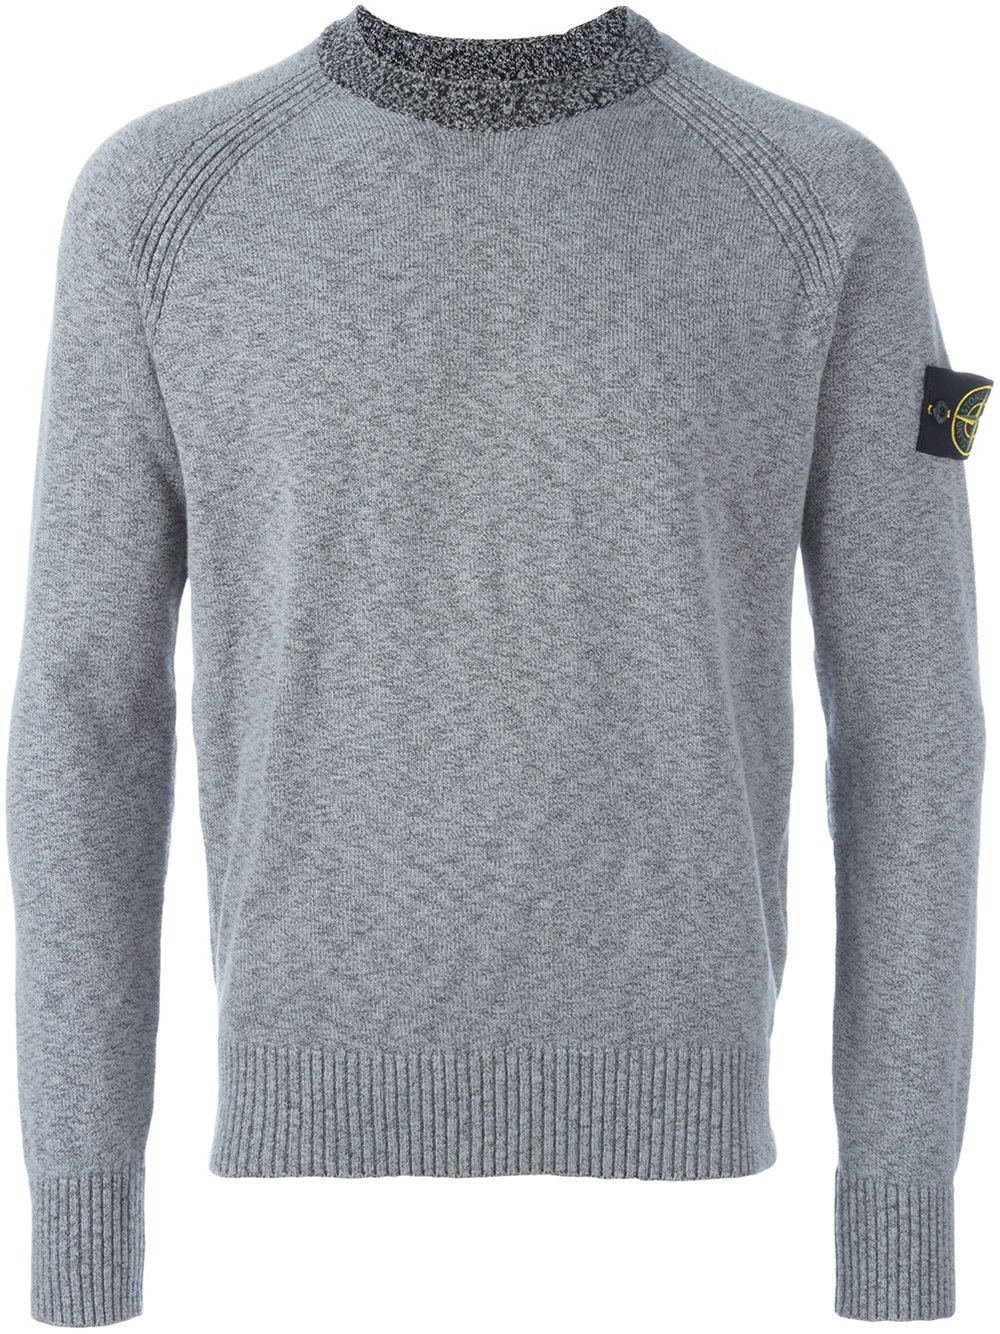 stone island arm patch pullover in gray for men grey lyst. Black Bedroom Furniture Sets. Home Design Ideas